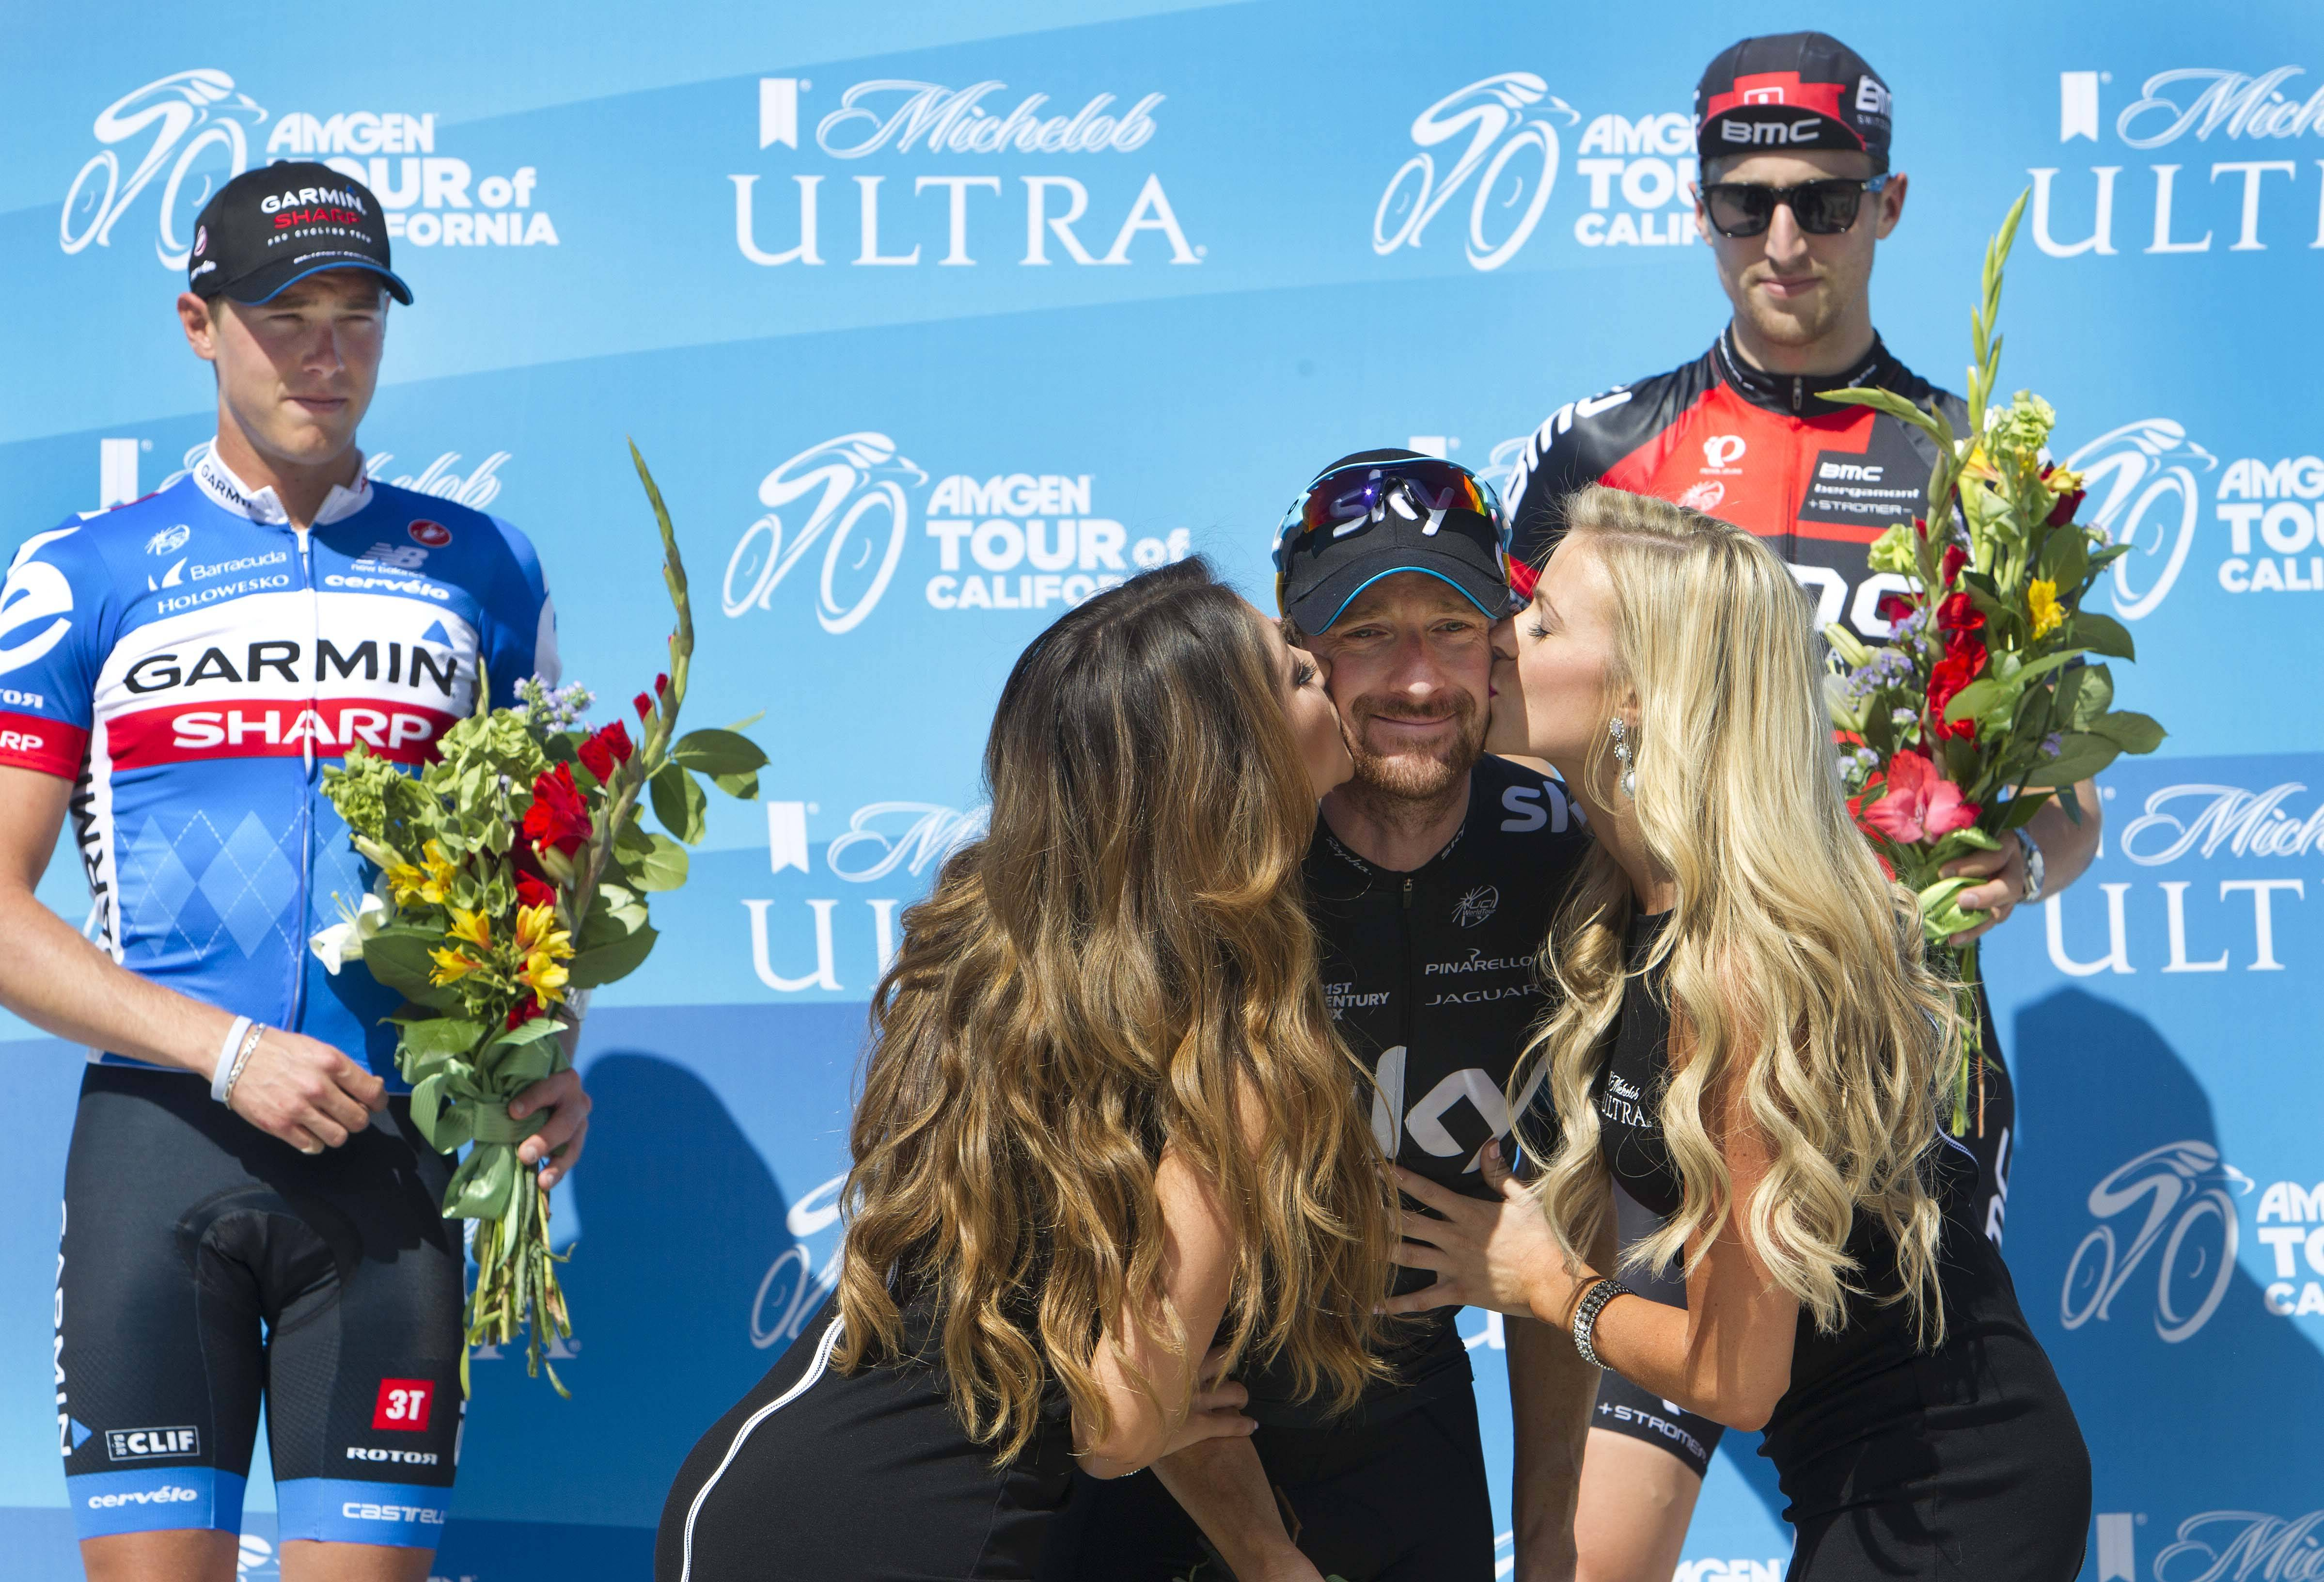 Bradley Wiggins of Team SKY, center, accepts kisses during the podium ceremony Monday after winning the second stage of the Amgen Tour of California in Folsom.